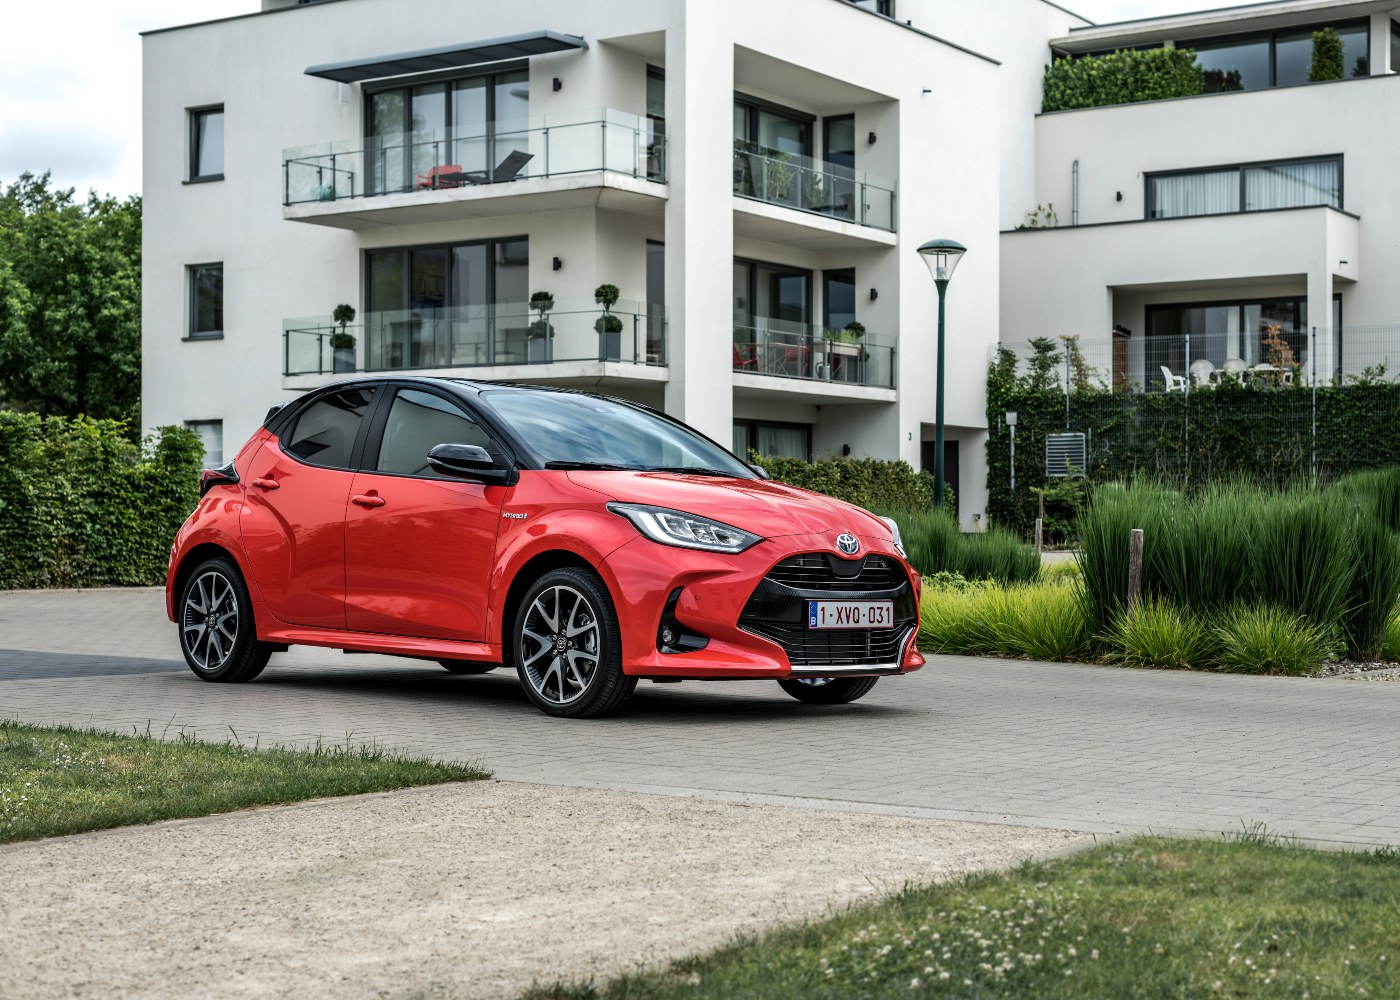 Toyota Yaris carro do ano 2021